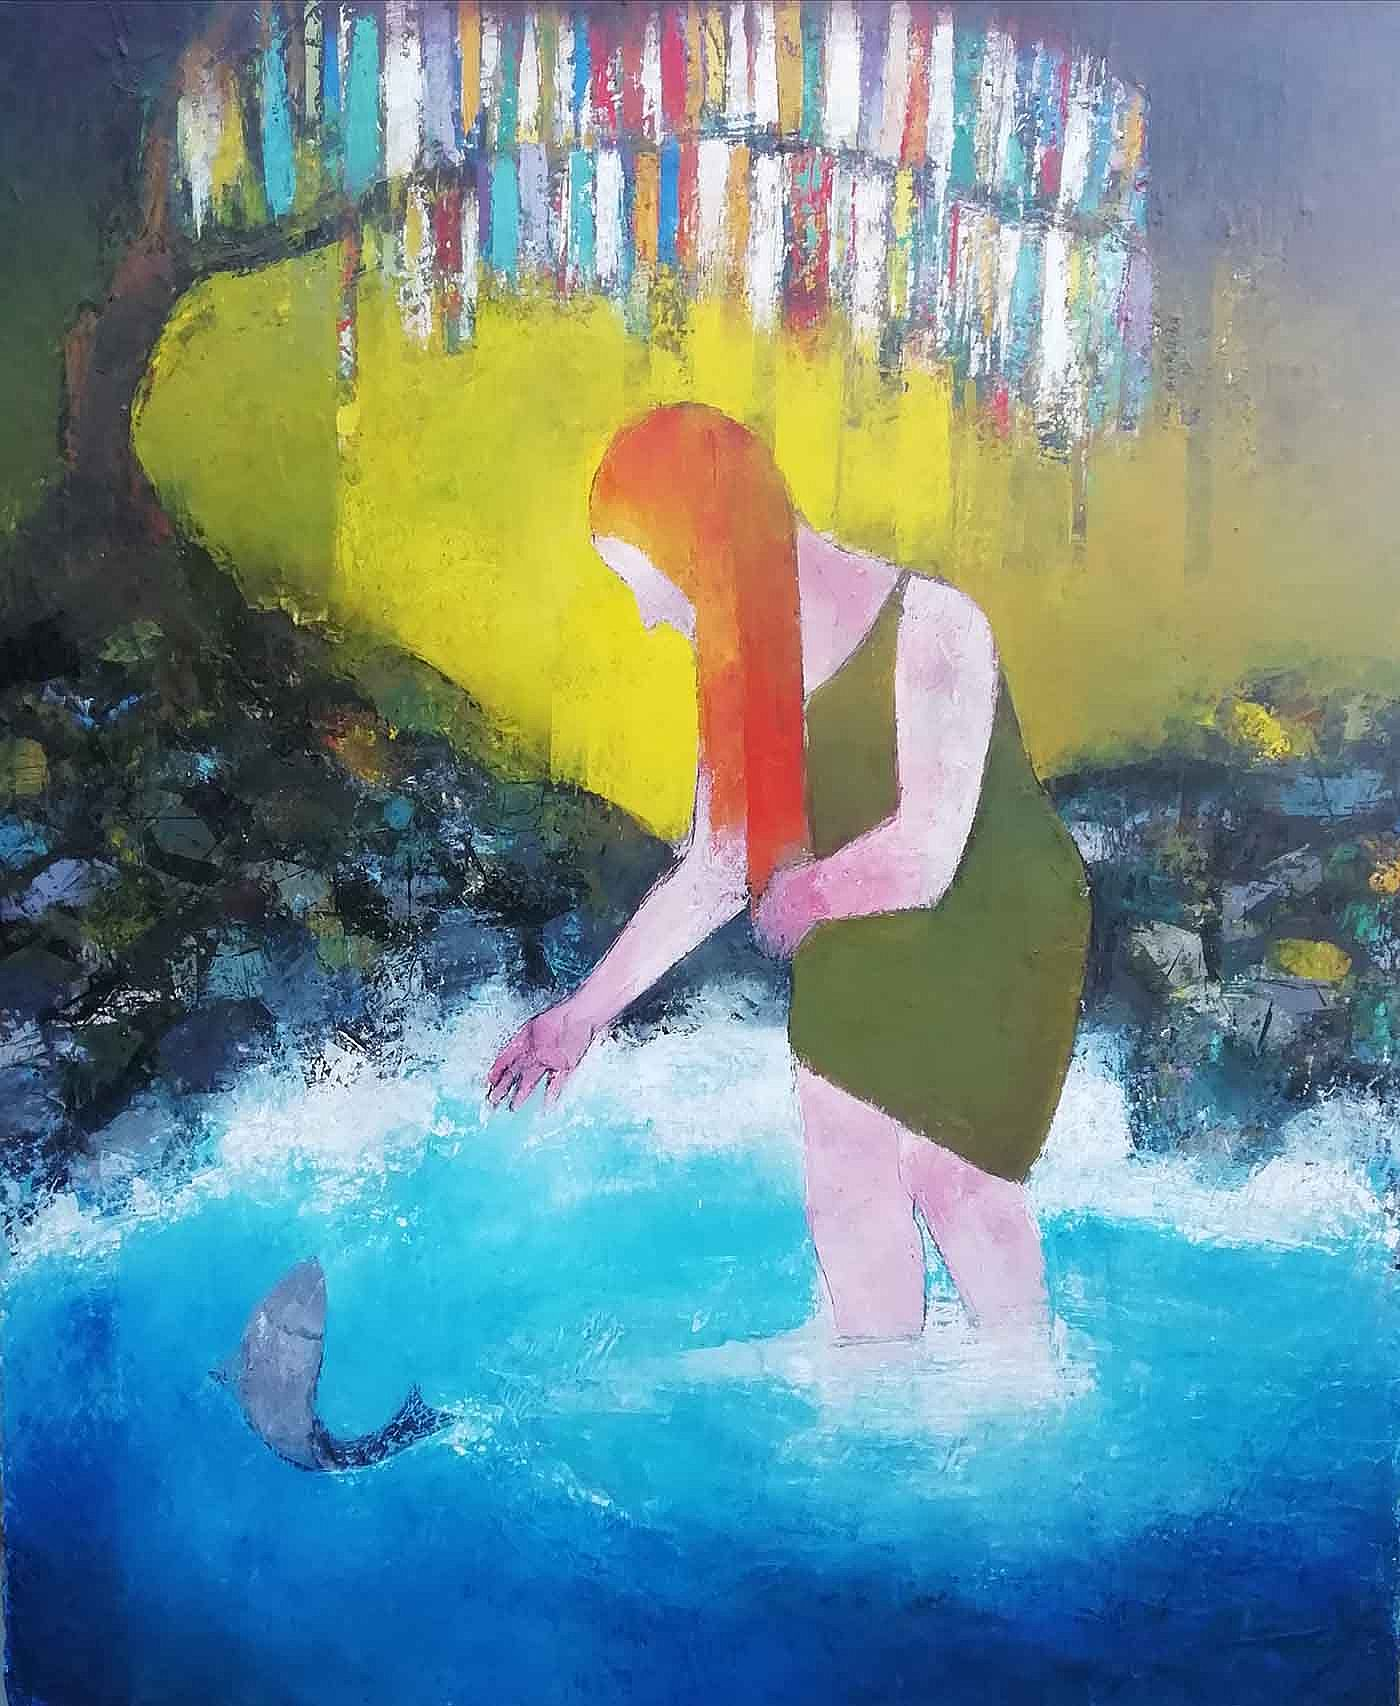 Crazy Jane at the well  by Cormac O'Leary